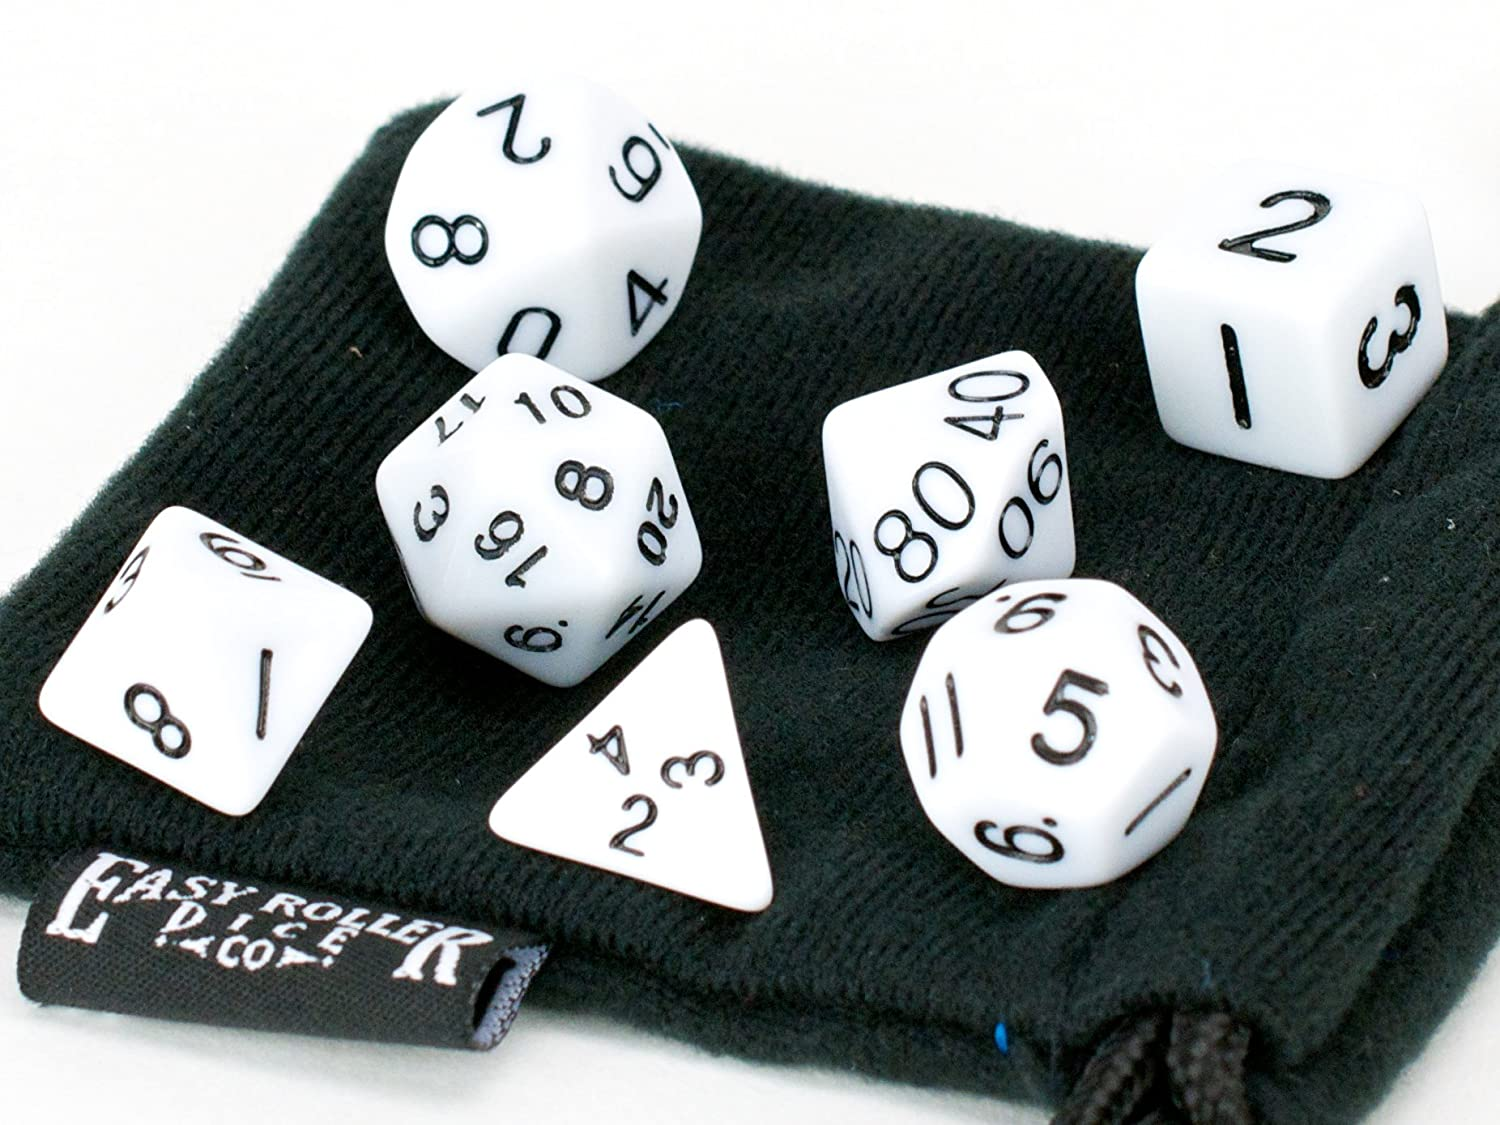 FREE Carrying Bag solid PRISTINE Edition Hand Checked Quality Easy Roller Dice Co Polyhedral Dice Set 7 Piece White Opaque